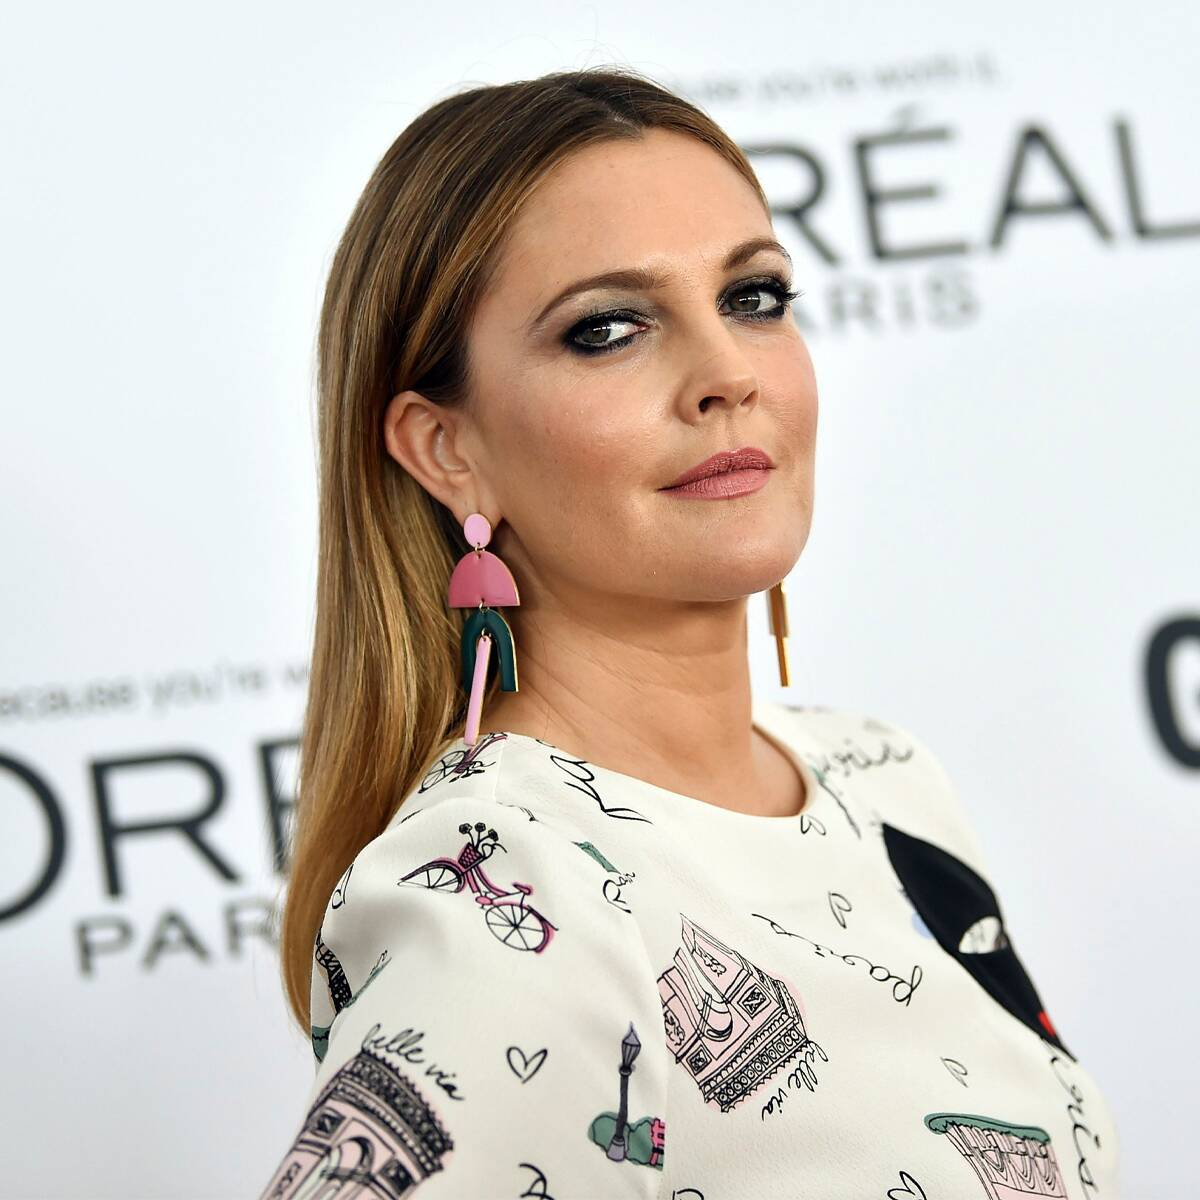 """Drew Barrymore Gets Candid About Her Year and a Half Inside a """"Psychiatric Ward"""" at 13"""